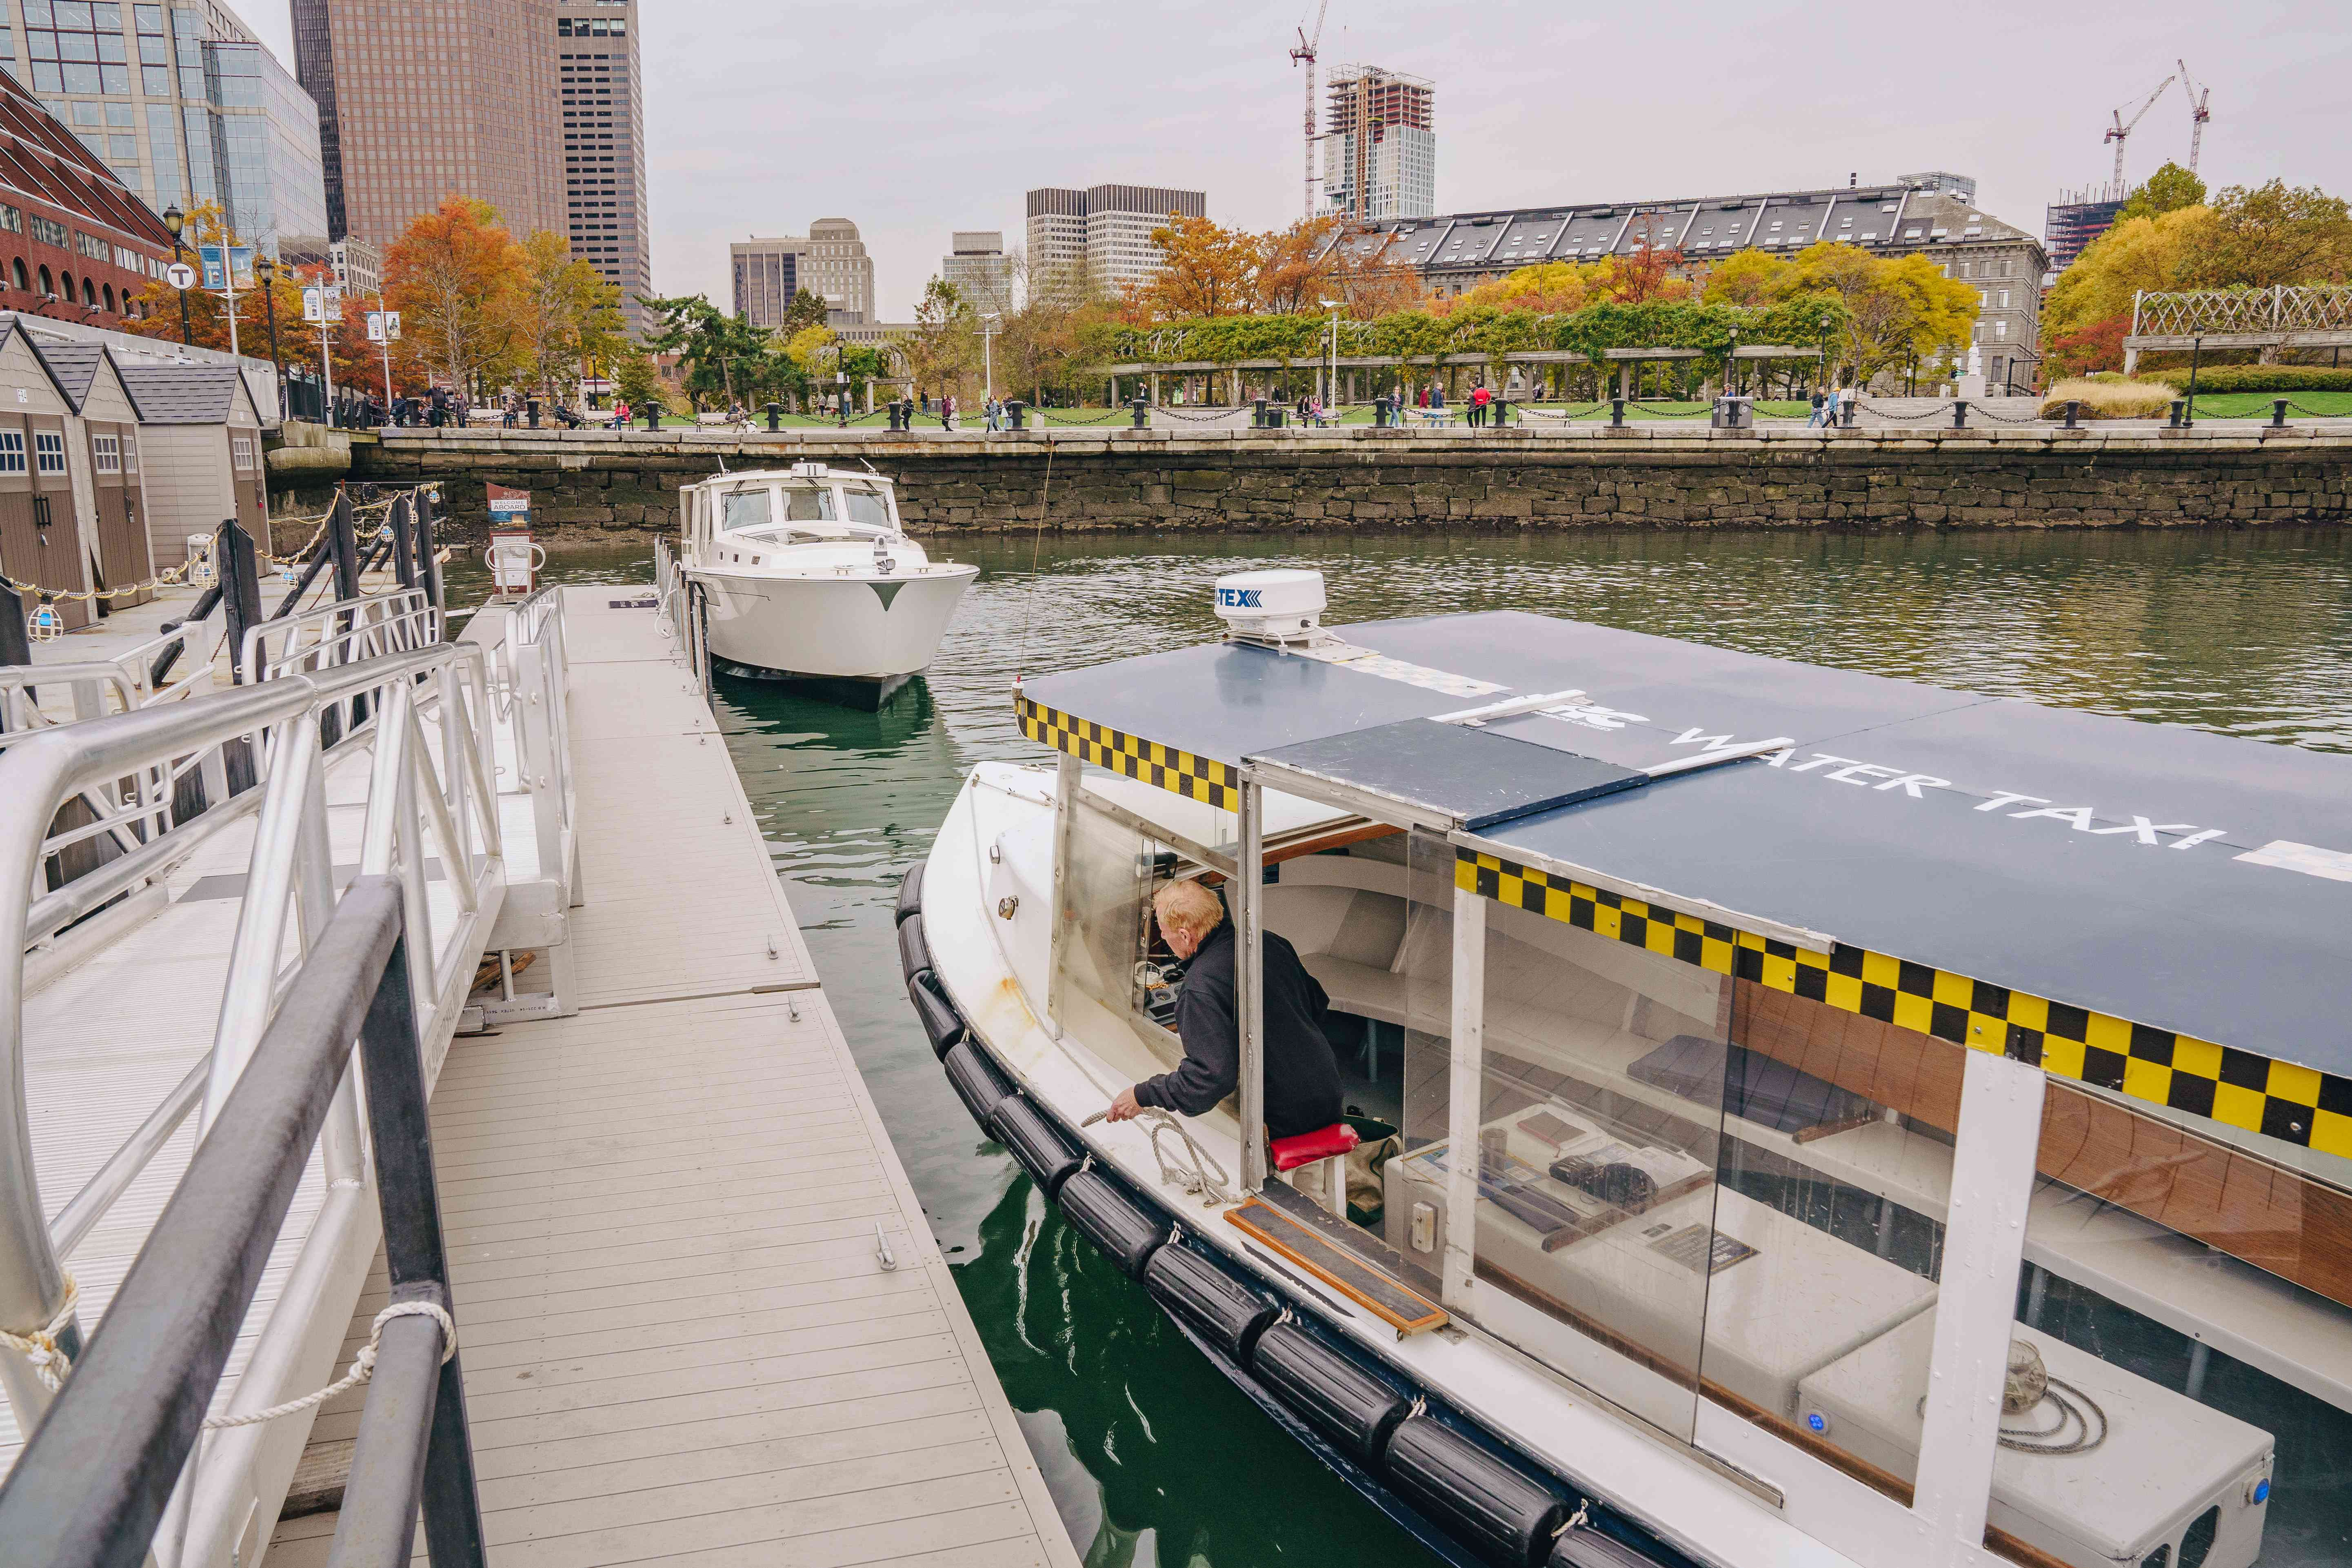 Water taxis in Boston